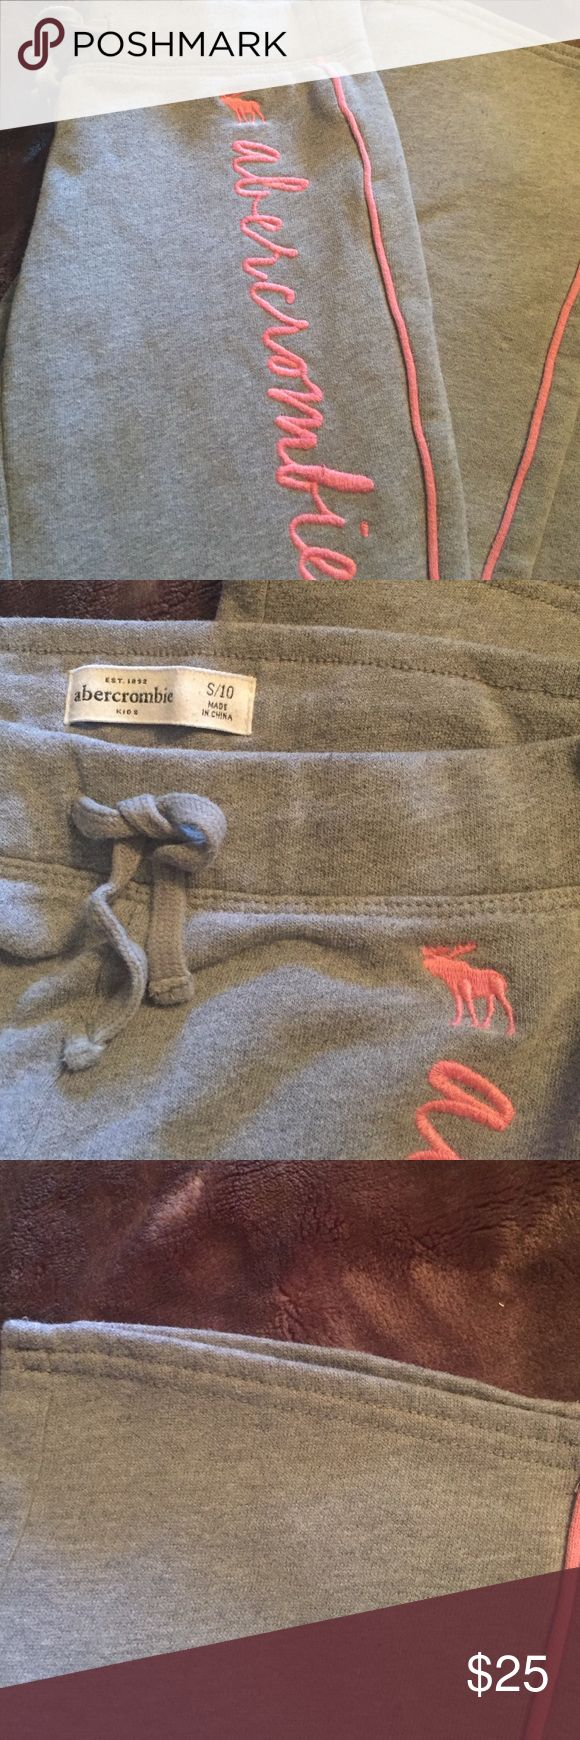 Abercrombie girls sweat bottoms, size 10 Little girls Abercrombie sweat bottoms.  These are adorable in size 10 and in great condition. abercrombie kids Bottoms Sweatpants & Joggers